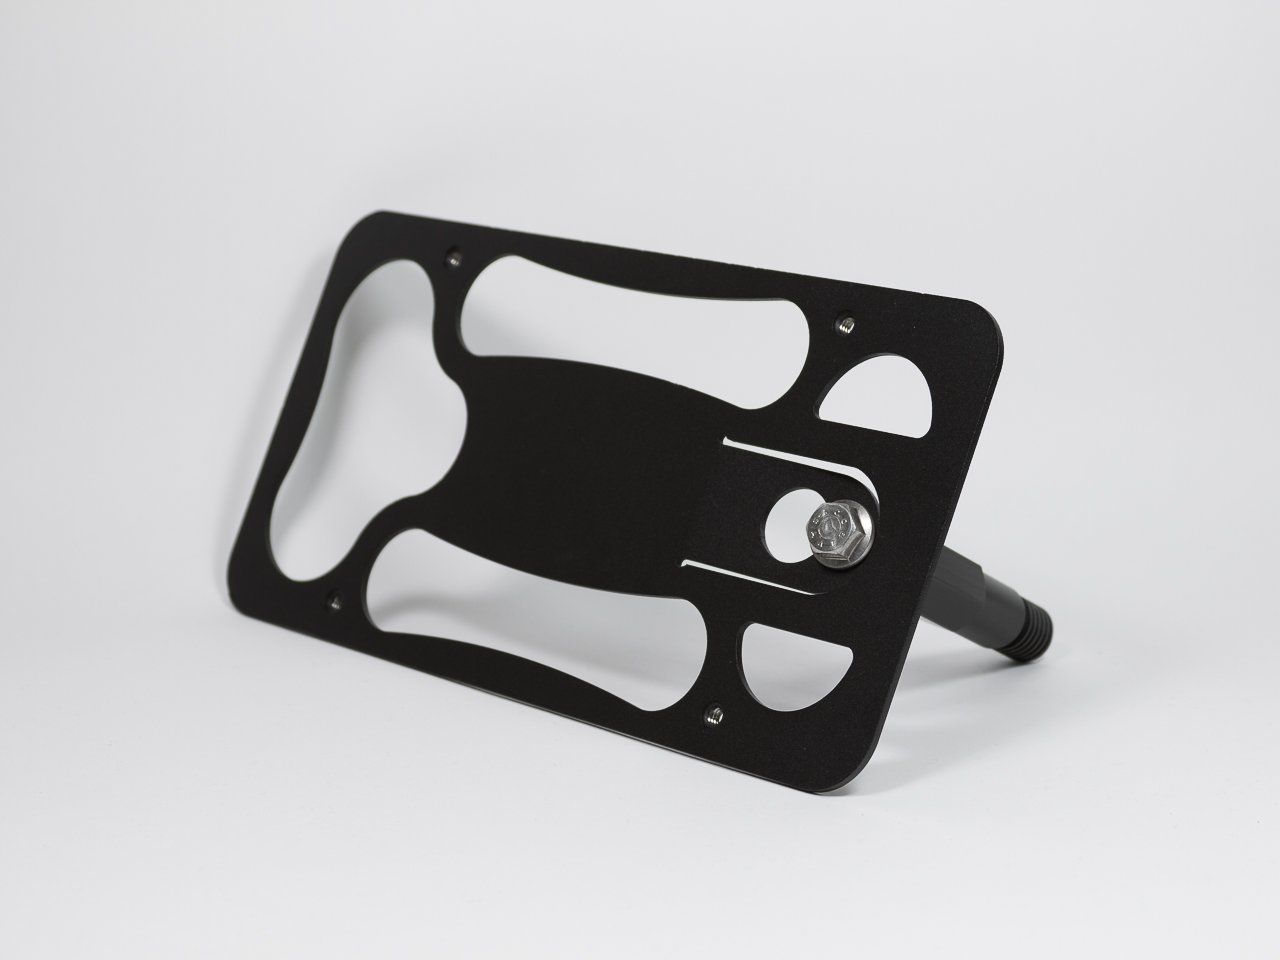 CravenSpeed Platypus License Plate Mount for BMW M3   2014-2018   No Drilling   Installs in Seconds   Made of Stainless Steel & Aluminum   Made in USA by CravenSpeed (Image #6)